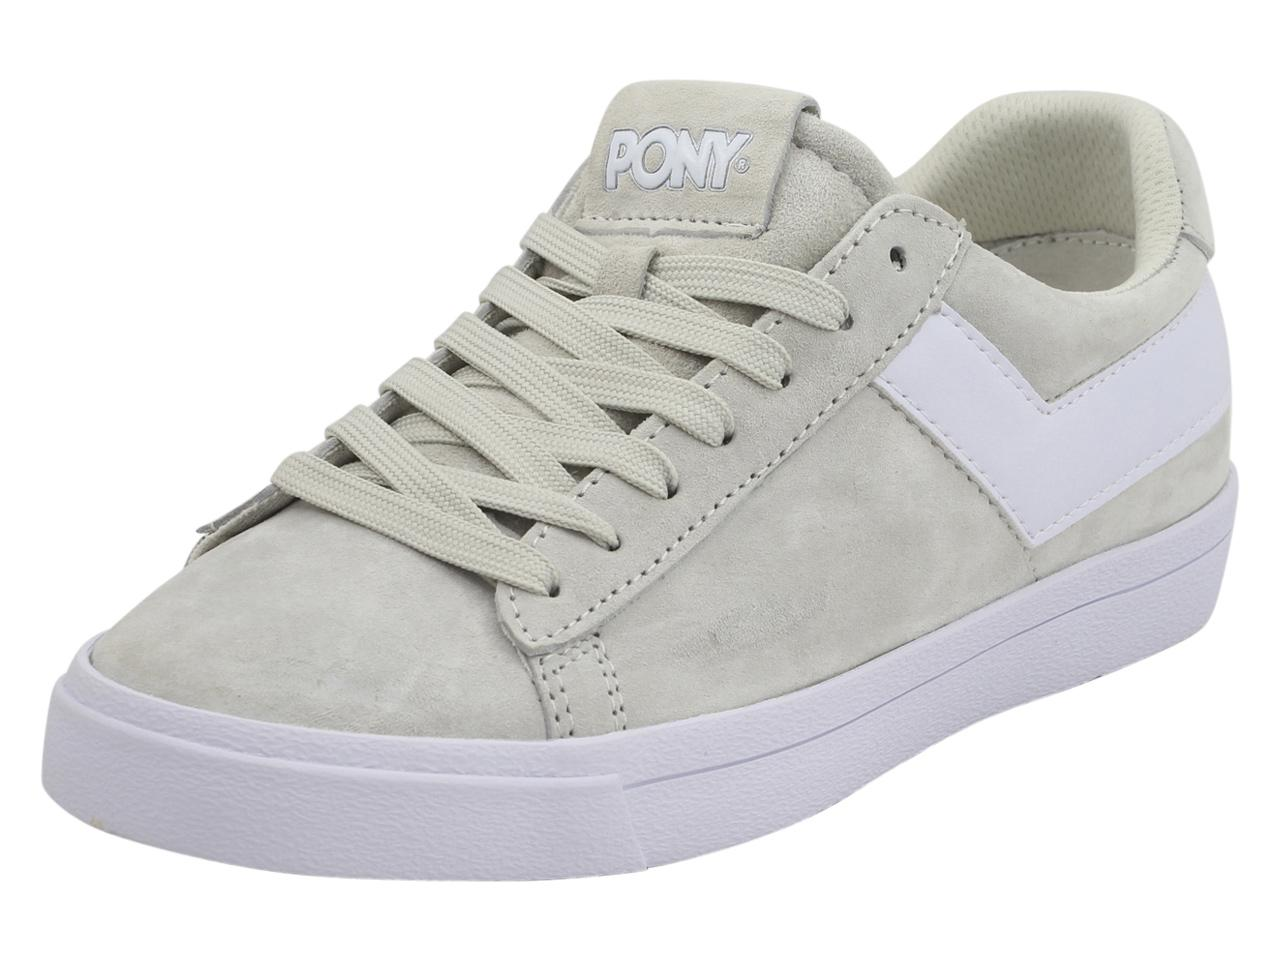 Image of Pony Women's Top Star Lo Core Suede Sneakers Shoes - Beige - 7 B(M) US